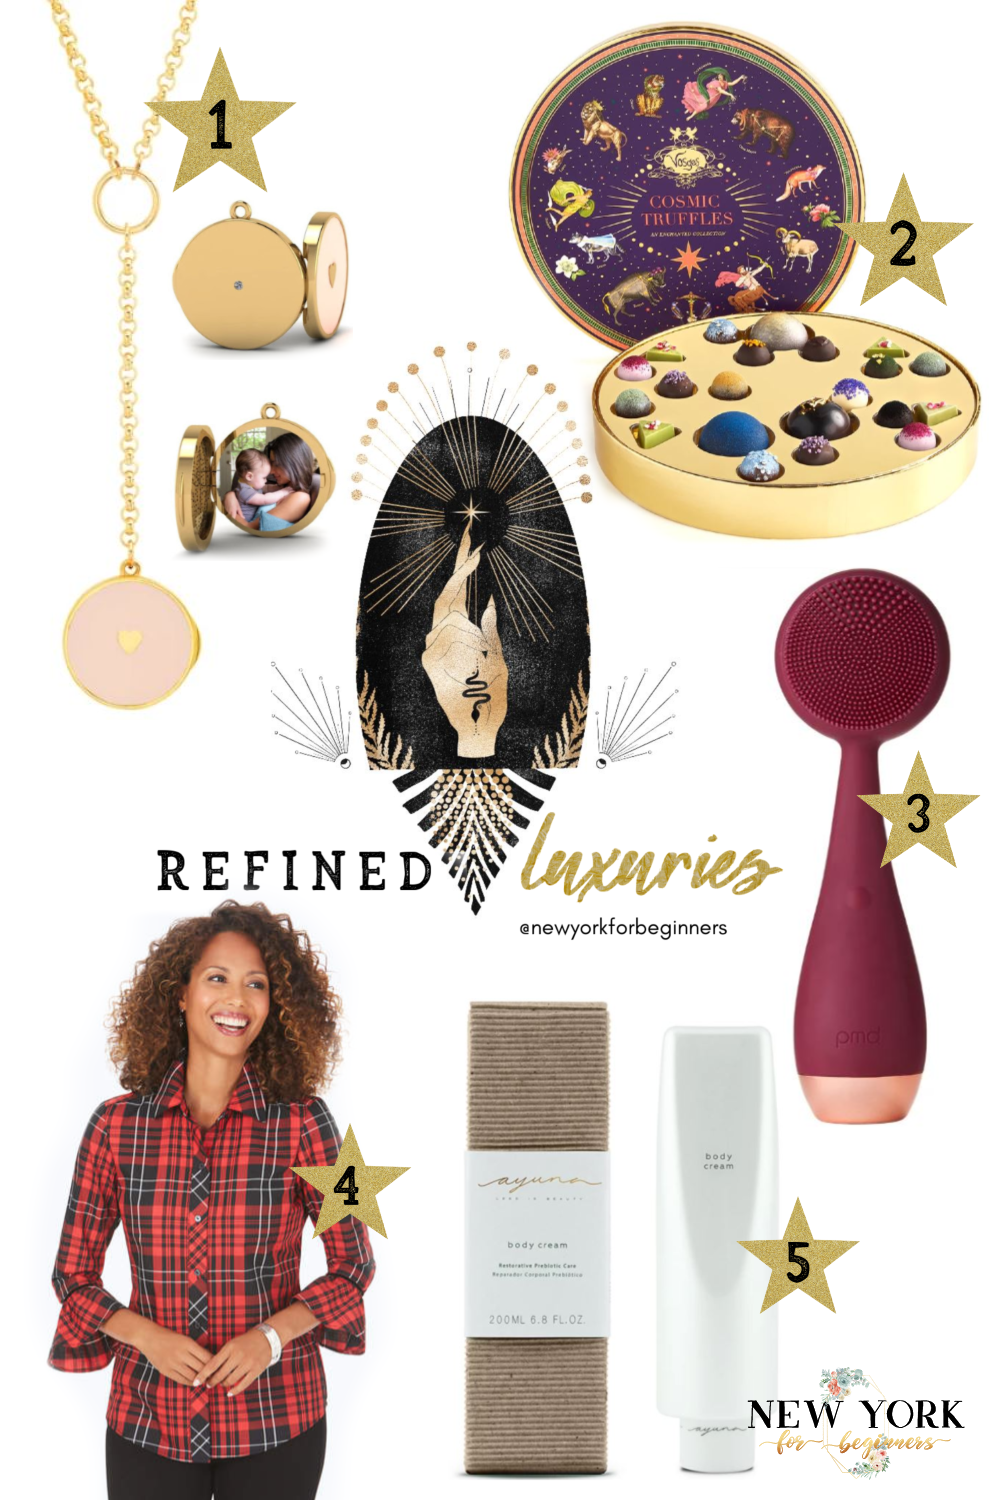 holiday gift guide with refined gifts